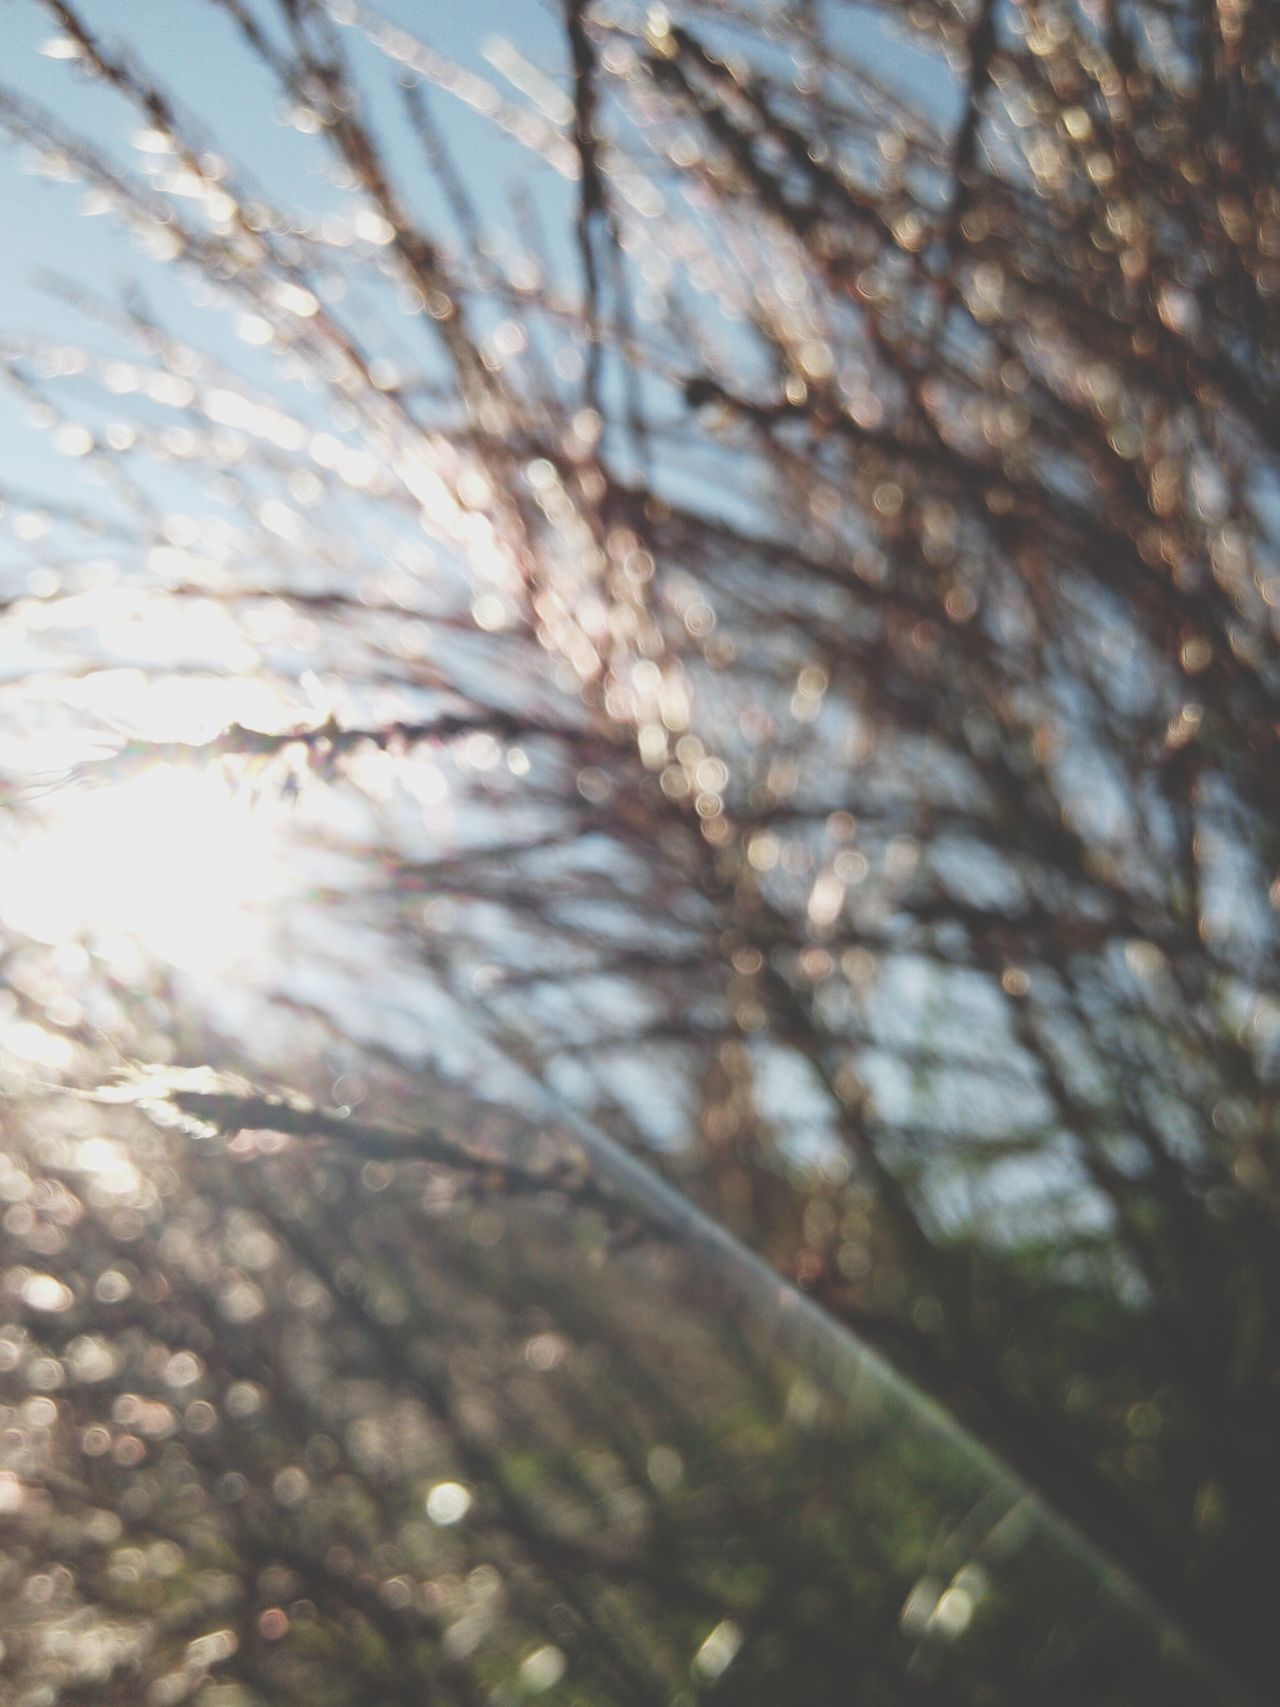 Miscanthus Grass Flowers Blur Bokeh Nature Shades Sun Glare Abstract Pattern Backgrounds